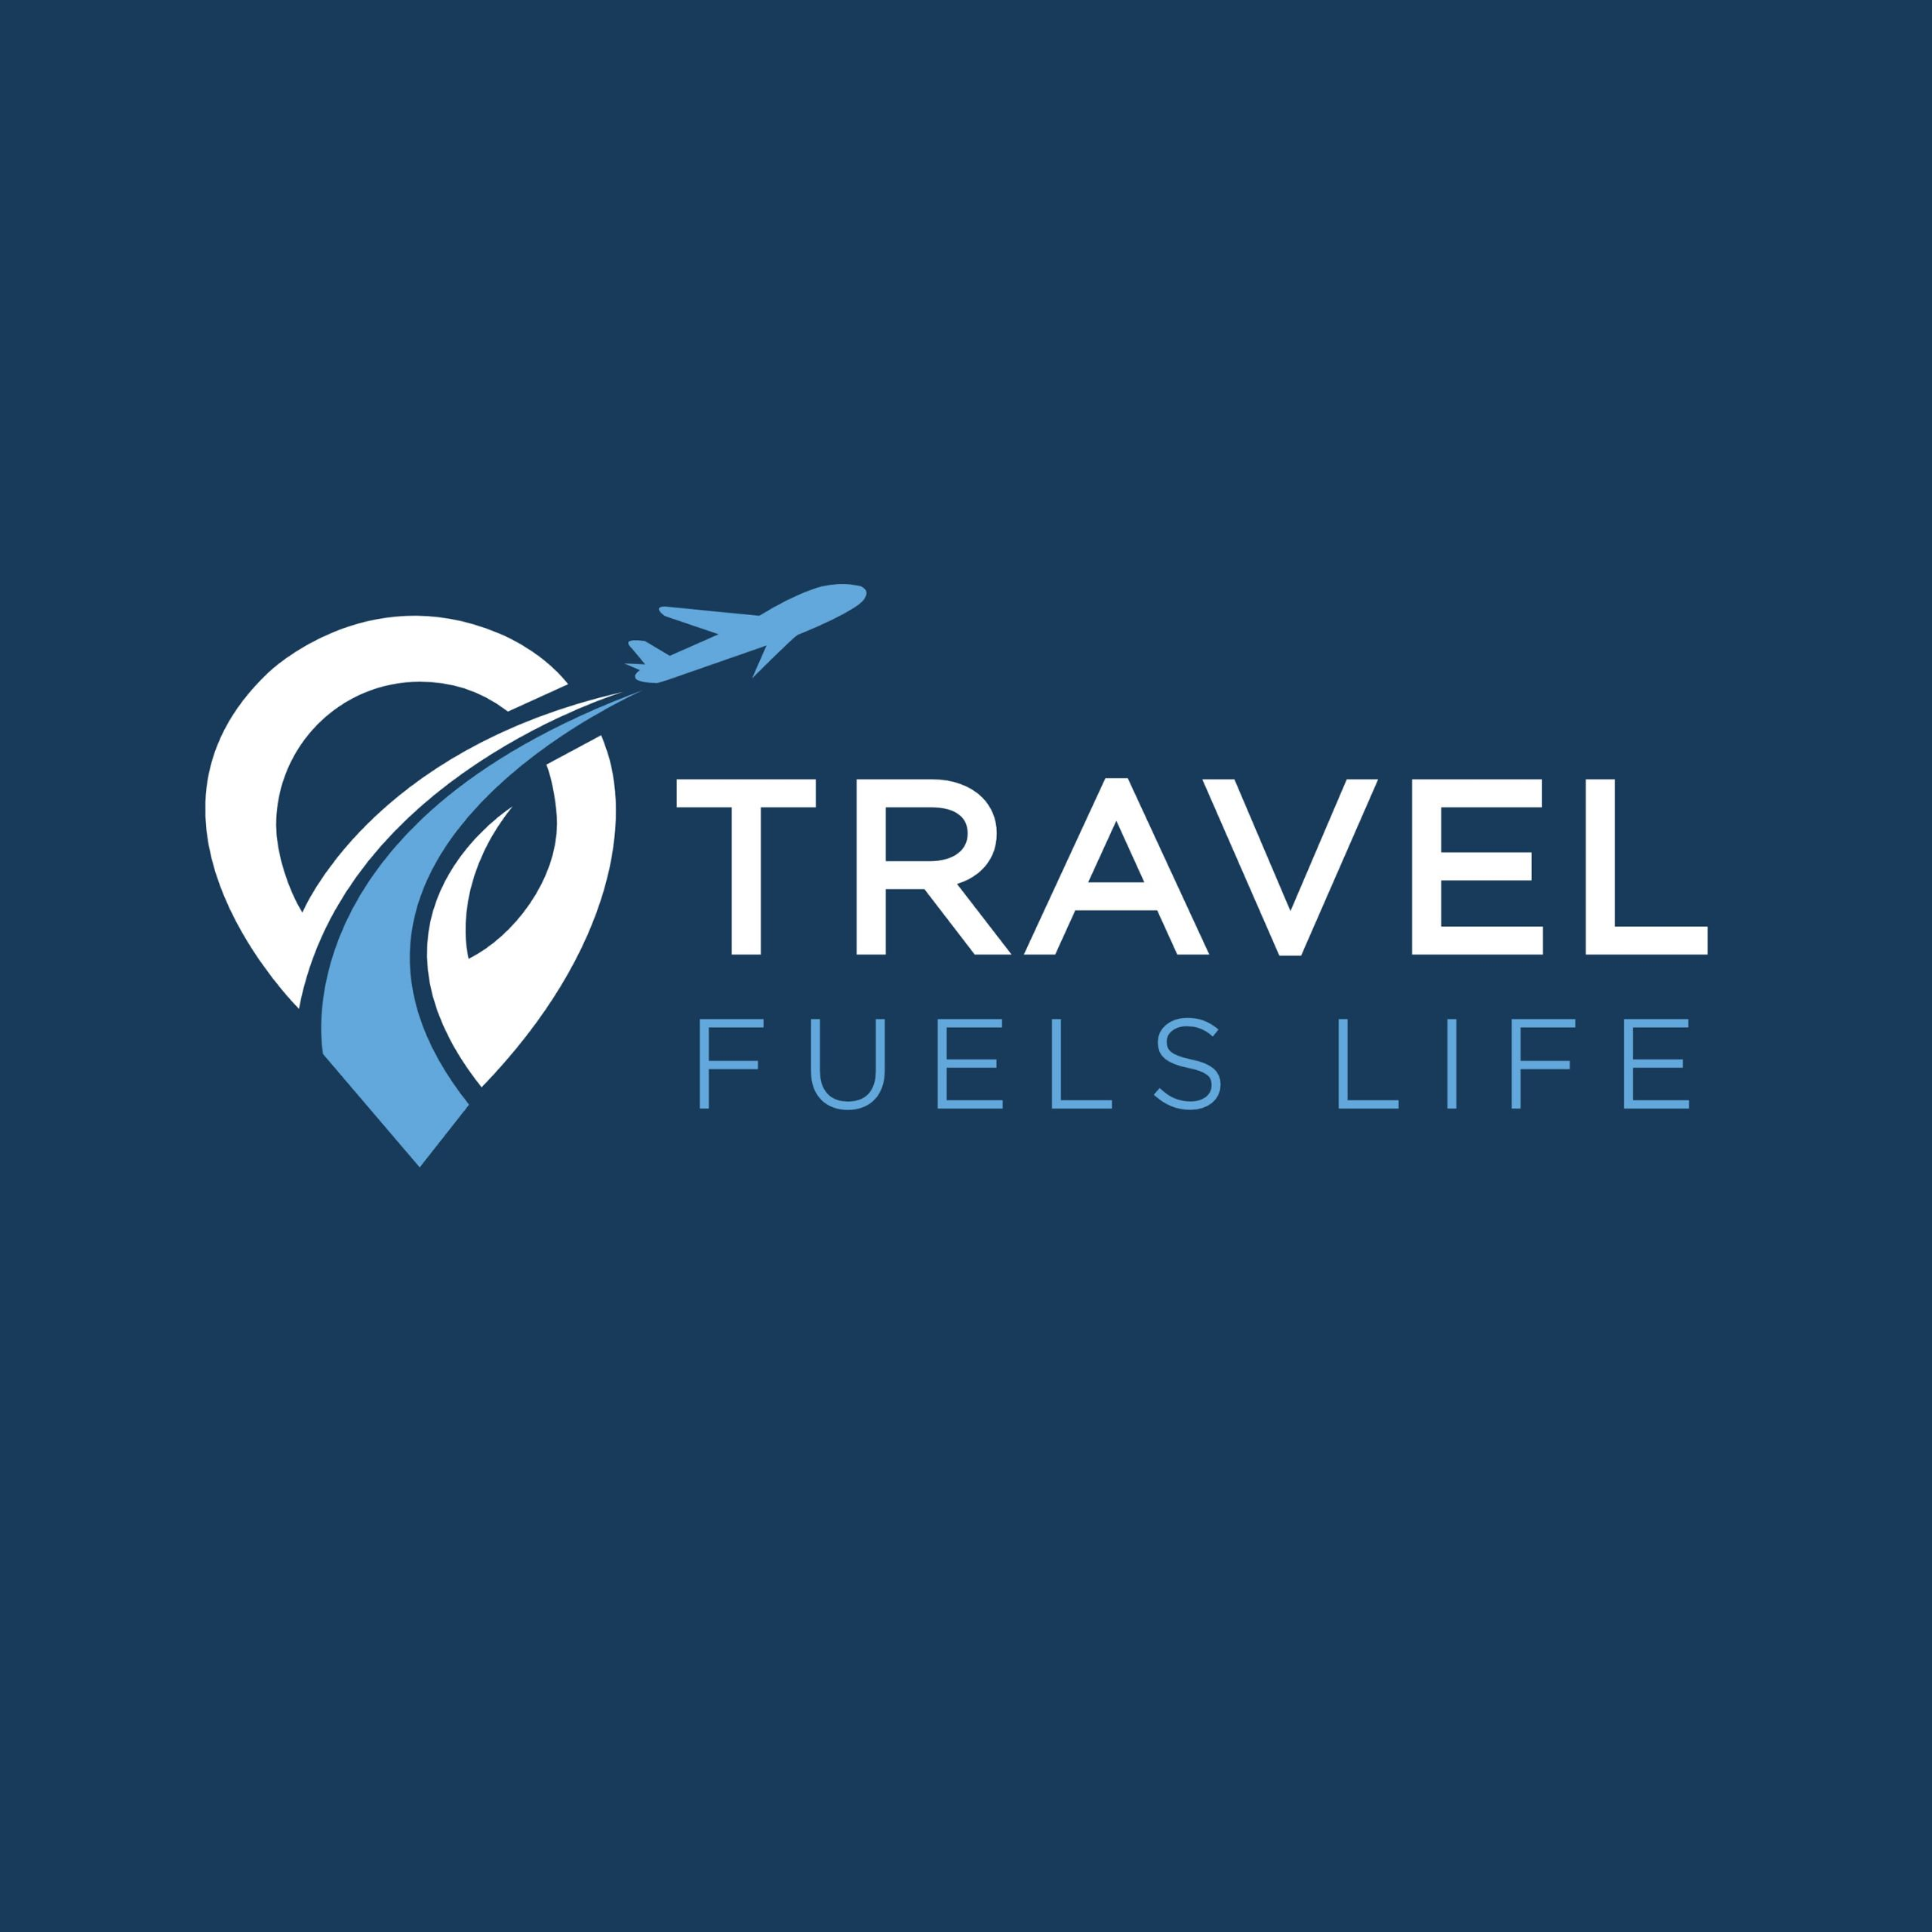 travel-fuels-life-3k2